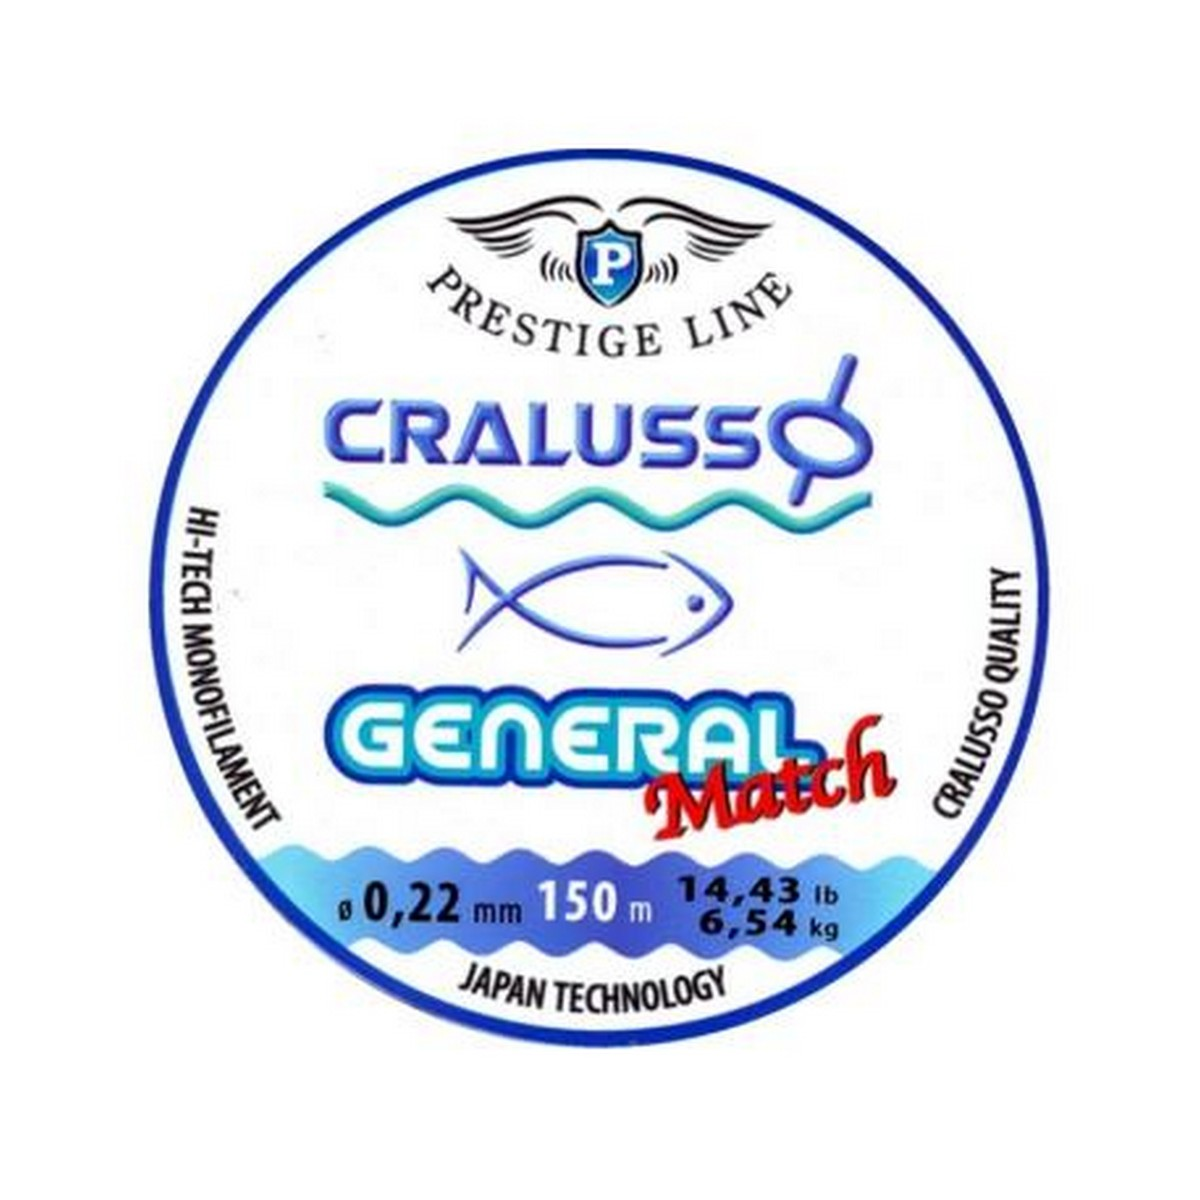 Cralusso General Match 150m